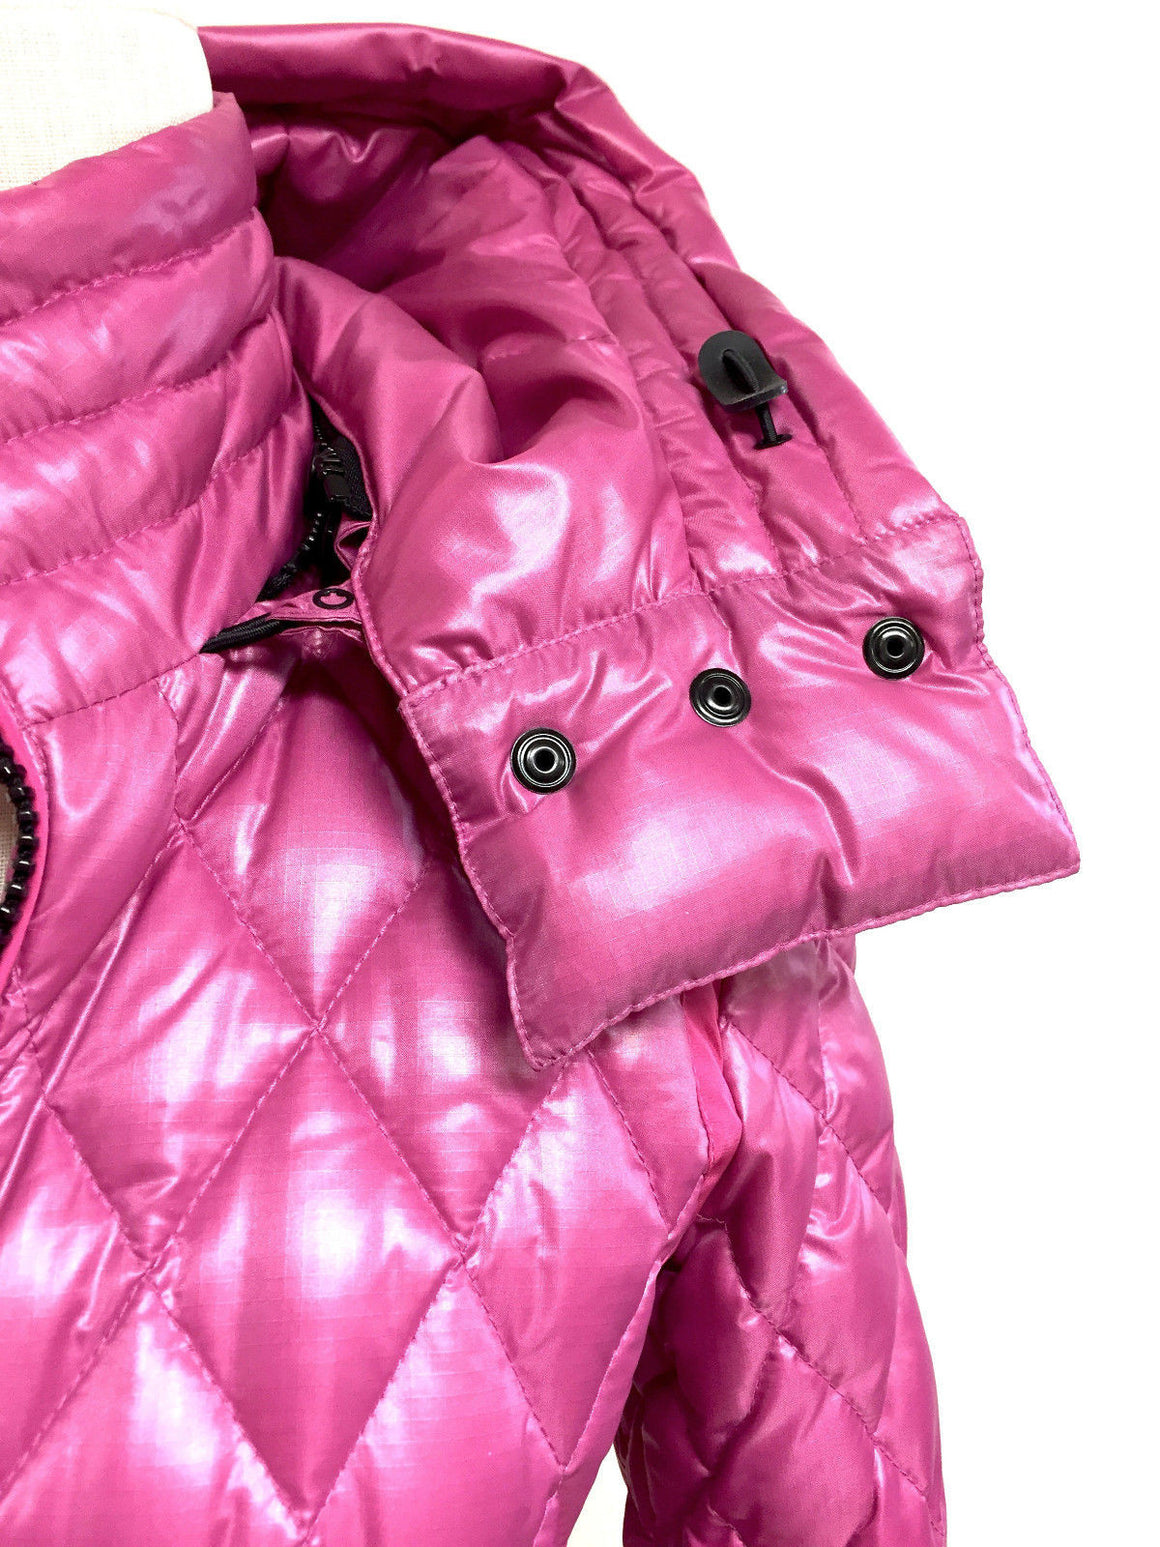 bisbiz.com AUTHIER / CERVINIA Fuchsia Diamond-Quilted Down Hooded Puffer Ski Jacket  Size: 42 / 6 - Bis Luxury Resale